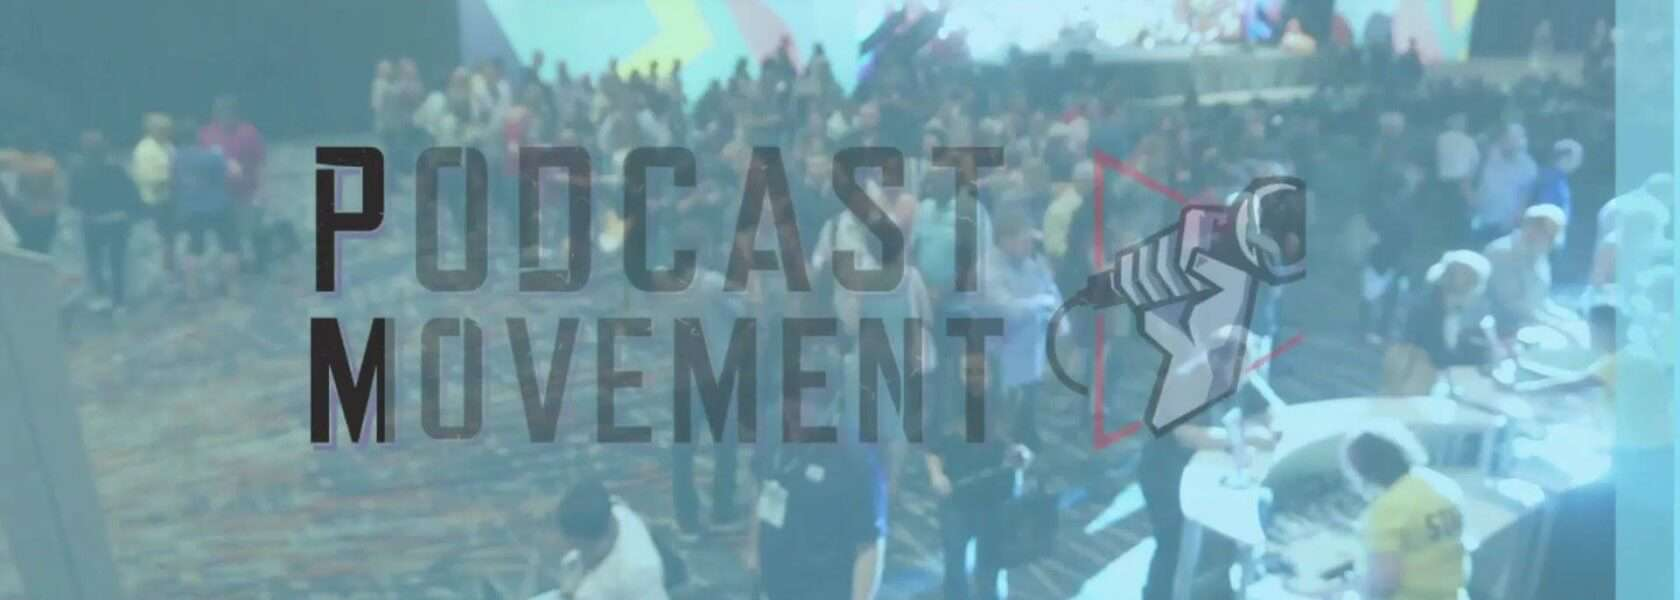 The Podcast Movement Are They Changing The Game